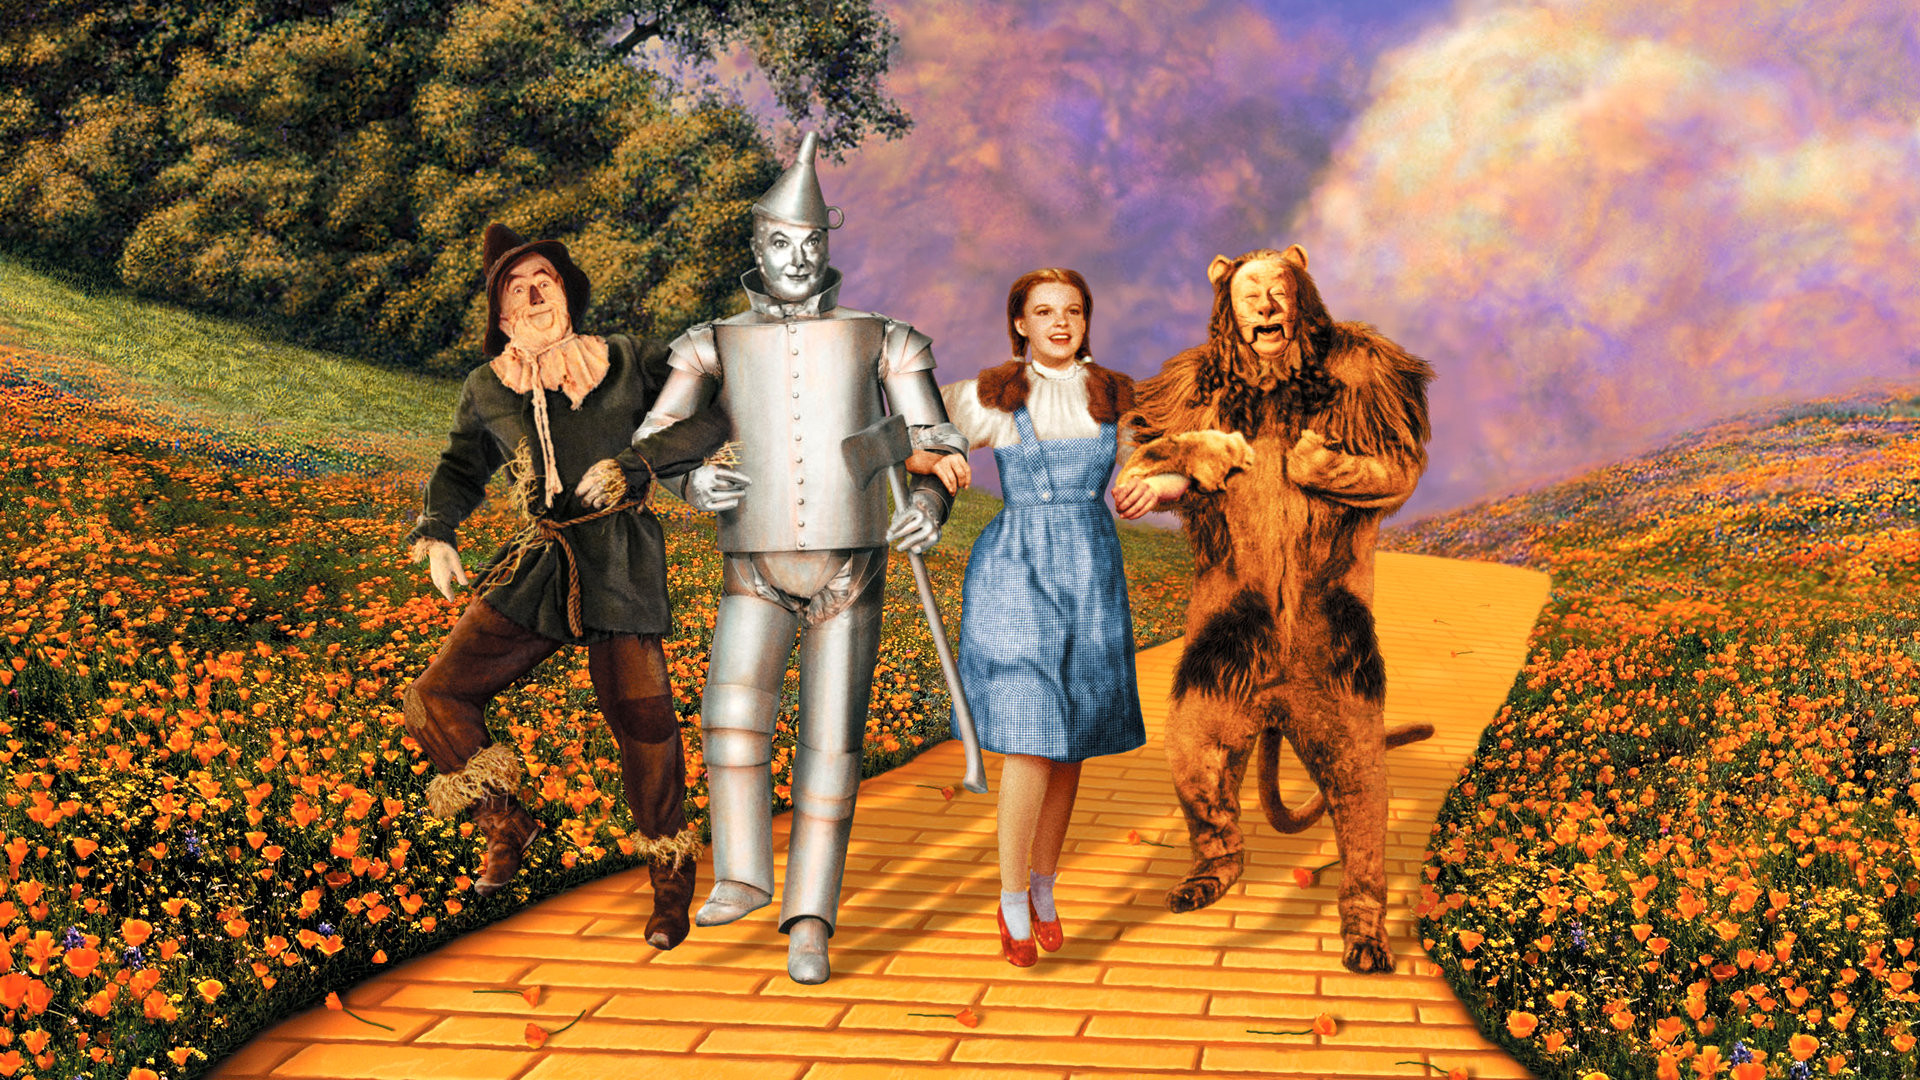 Wizard of oz heroku